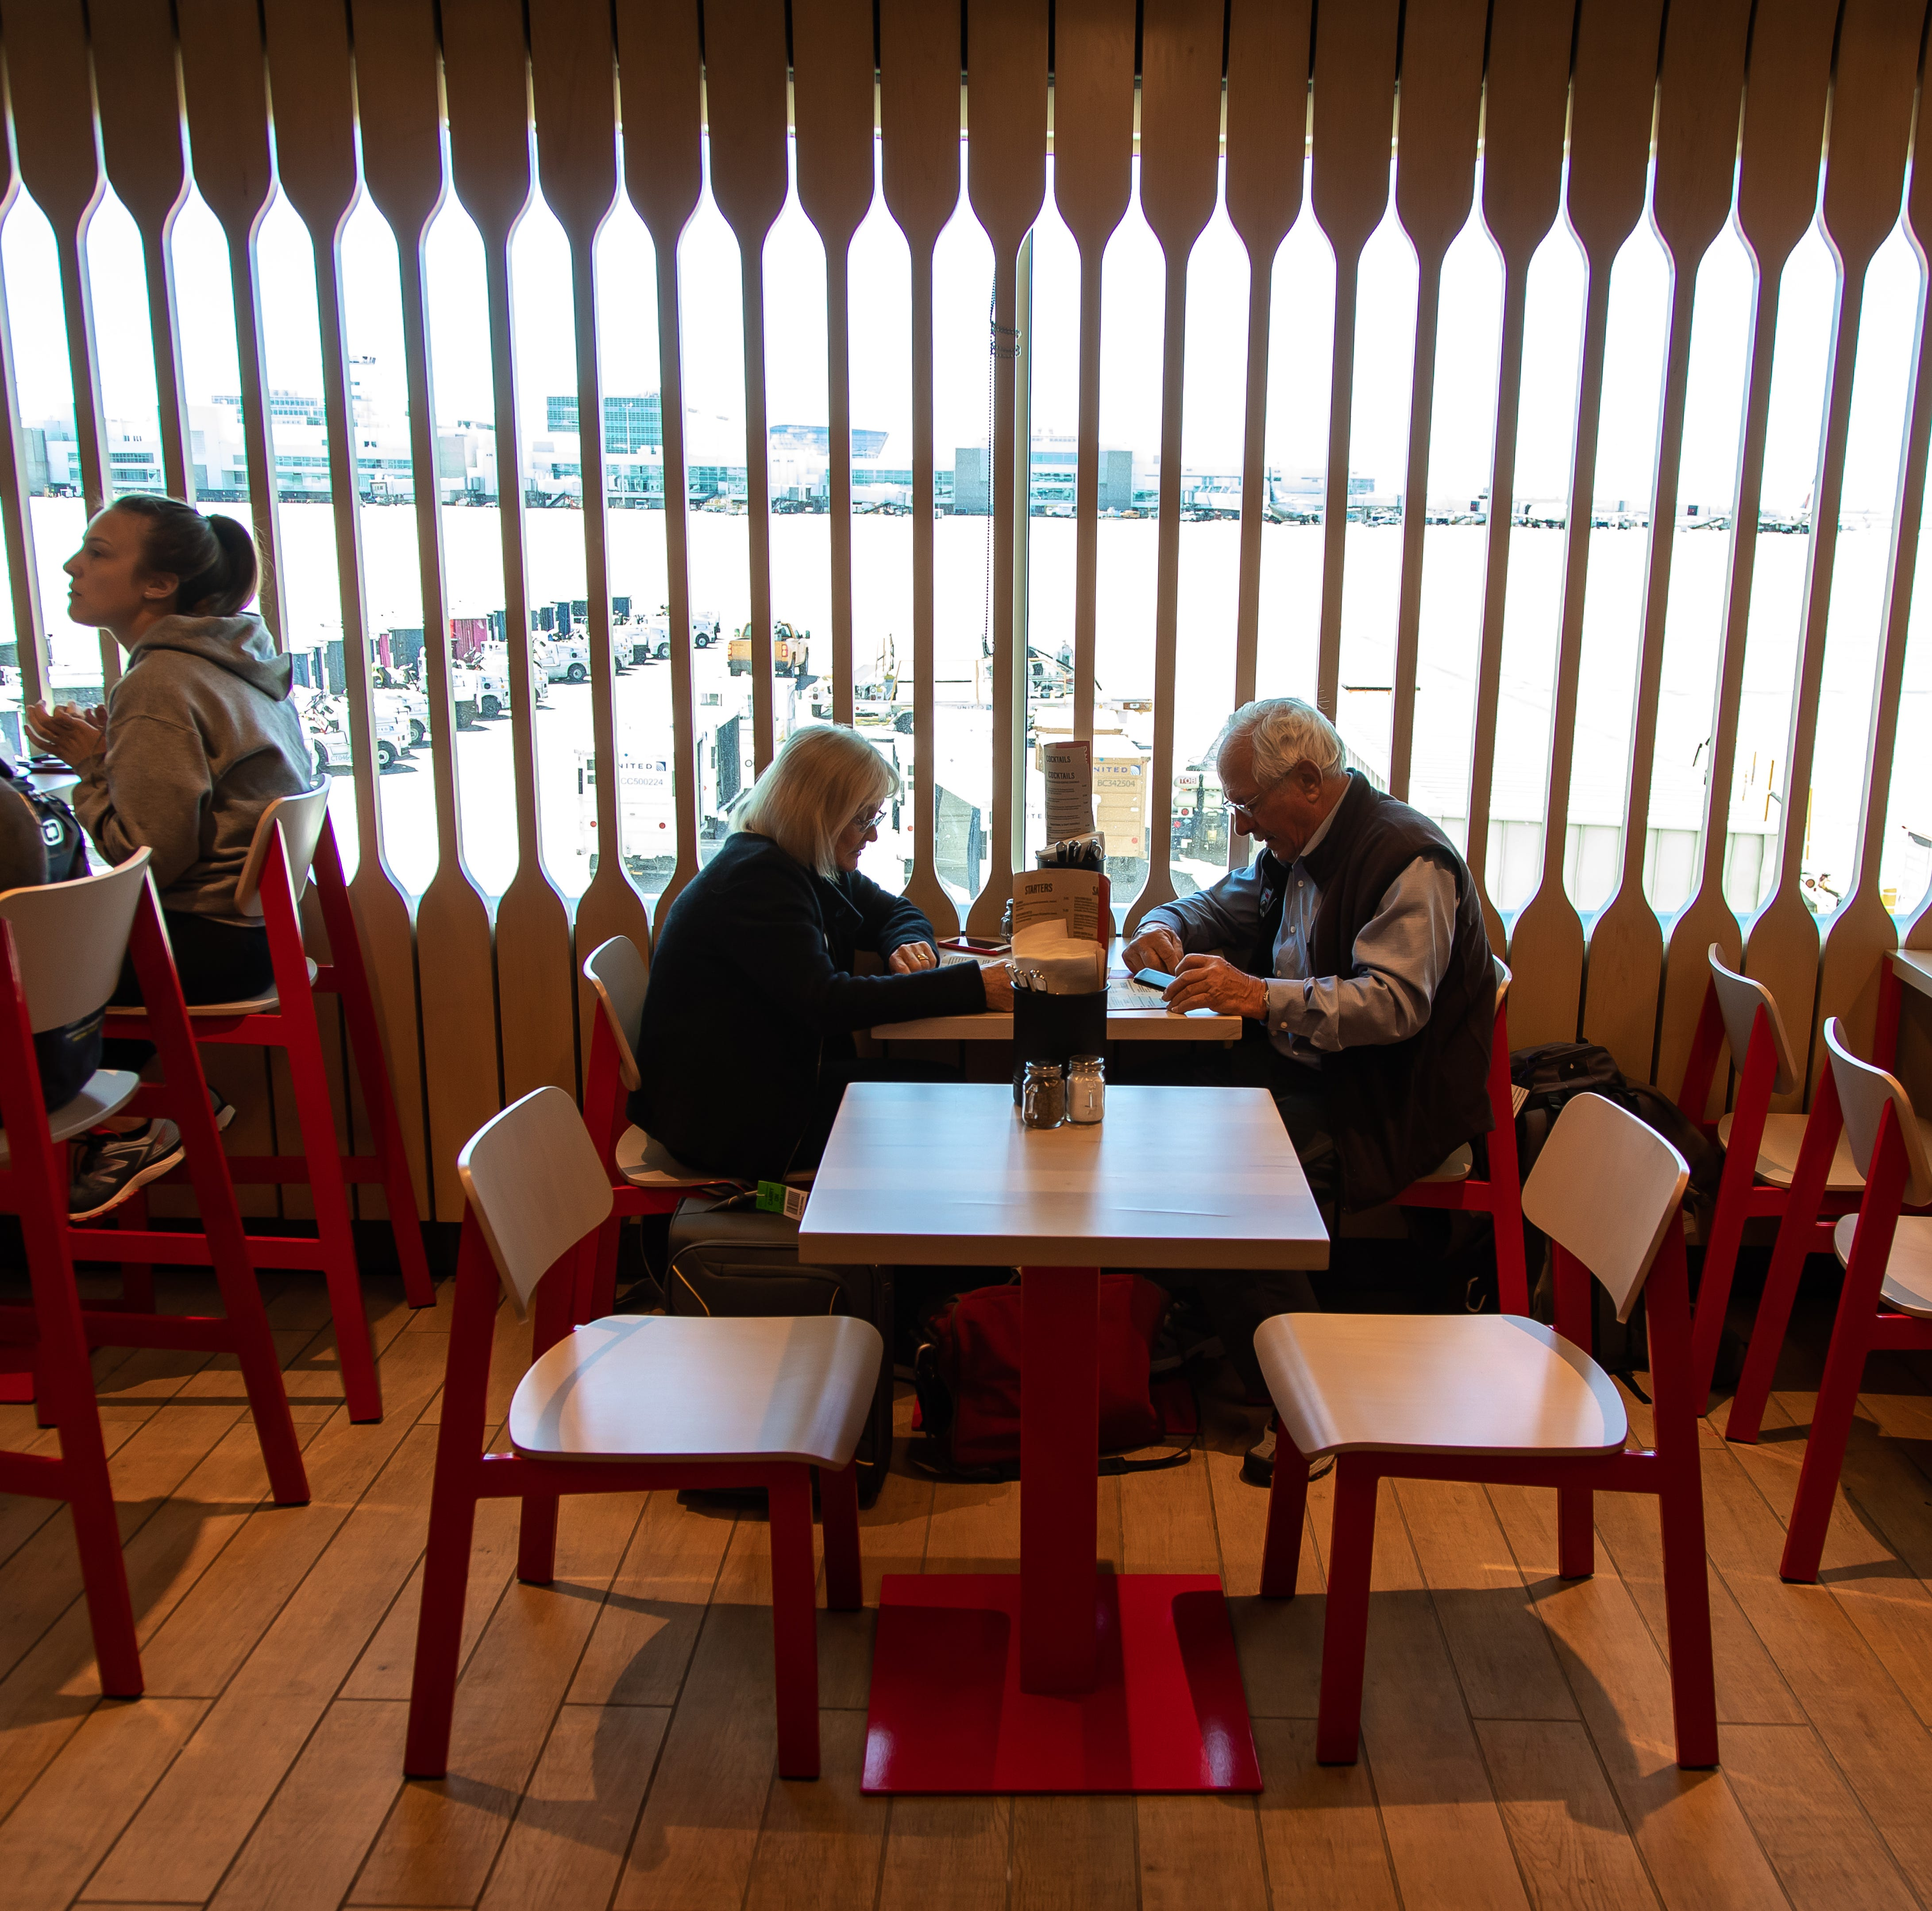 Here's your first look inside New Belgium's new restaurant at DIA